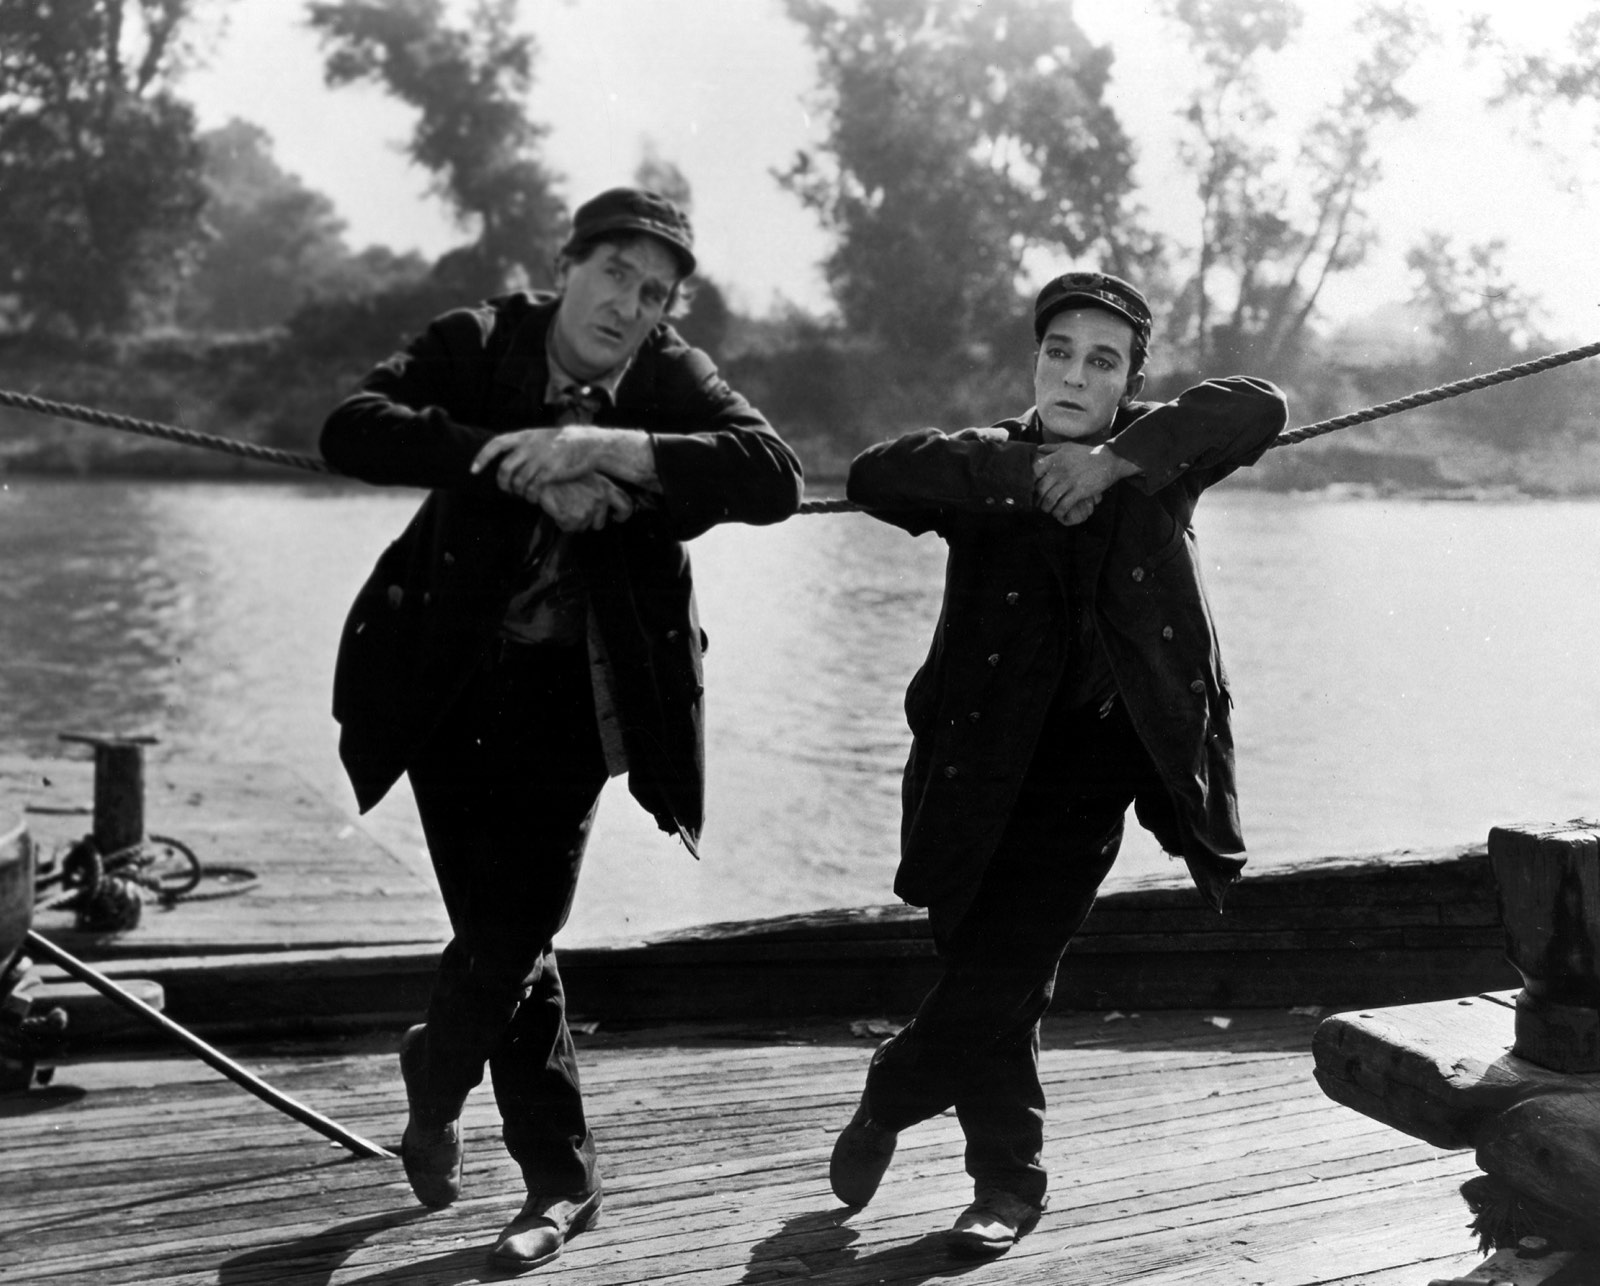 Cinemoments: Steamboat Bill Jr.